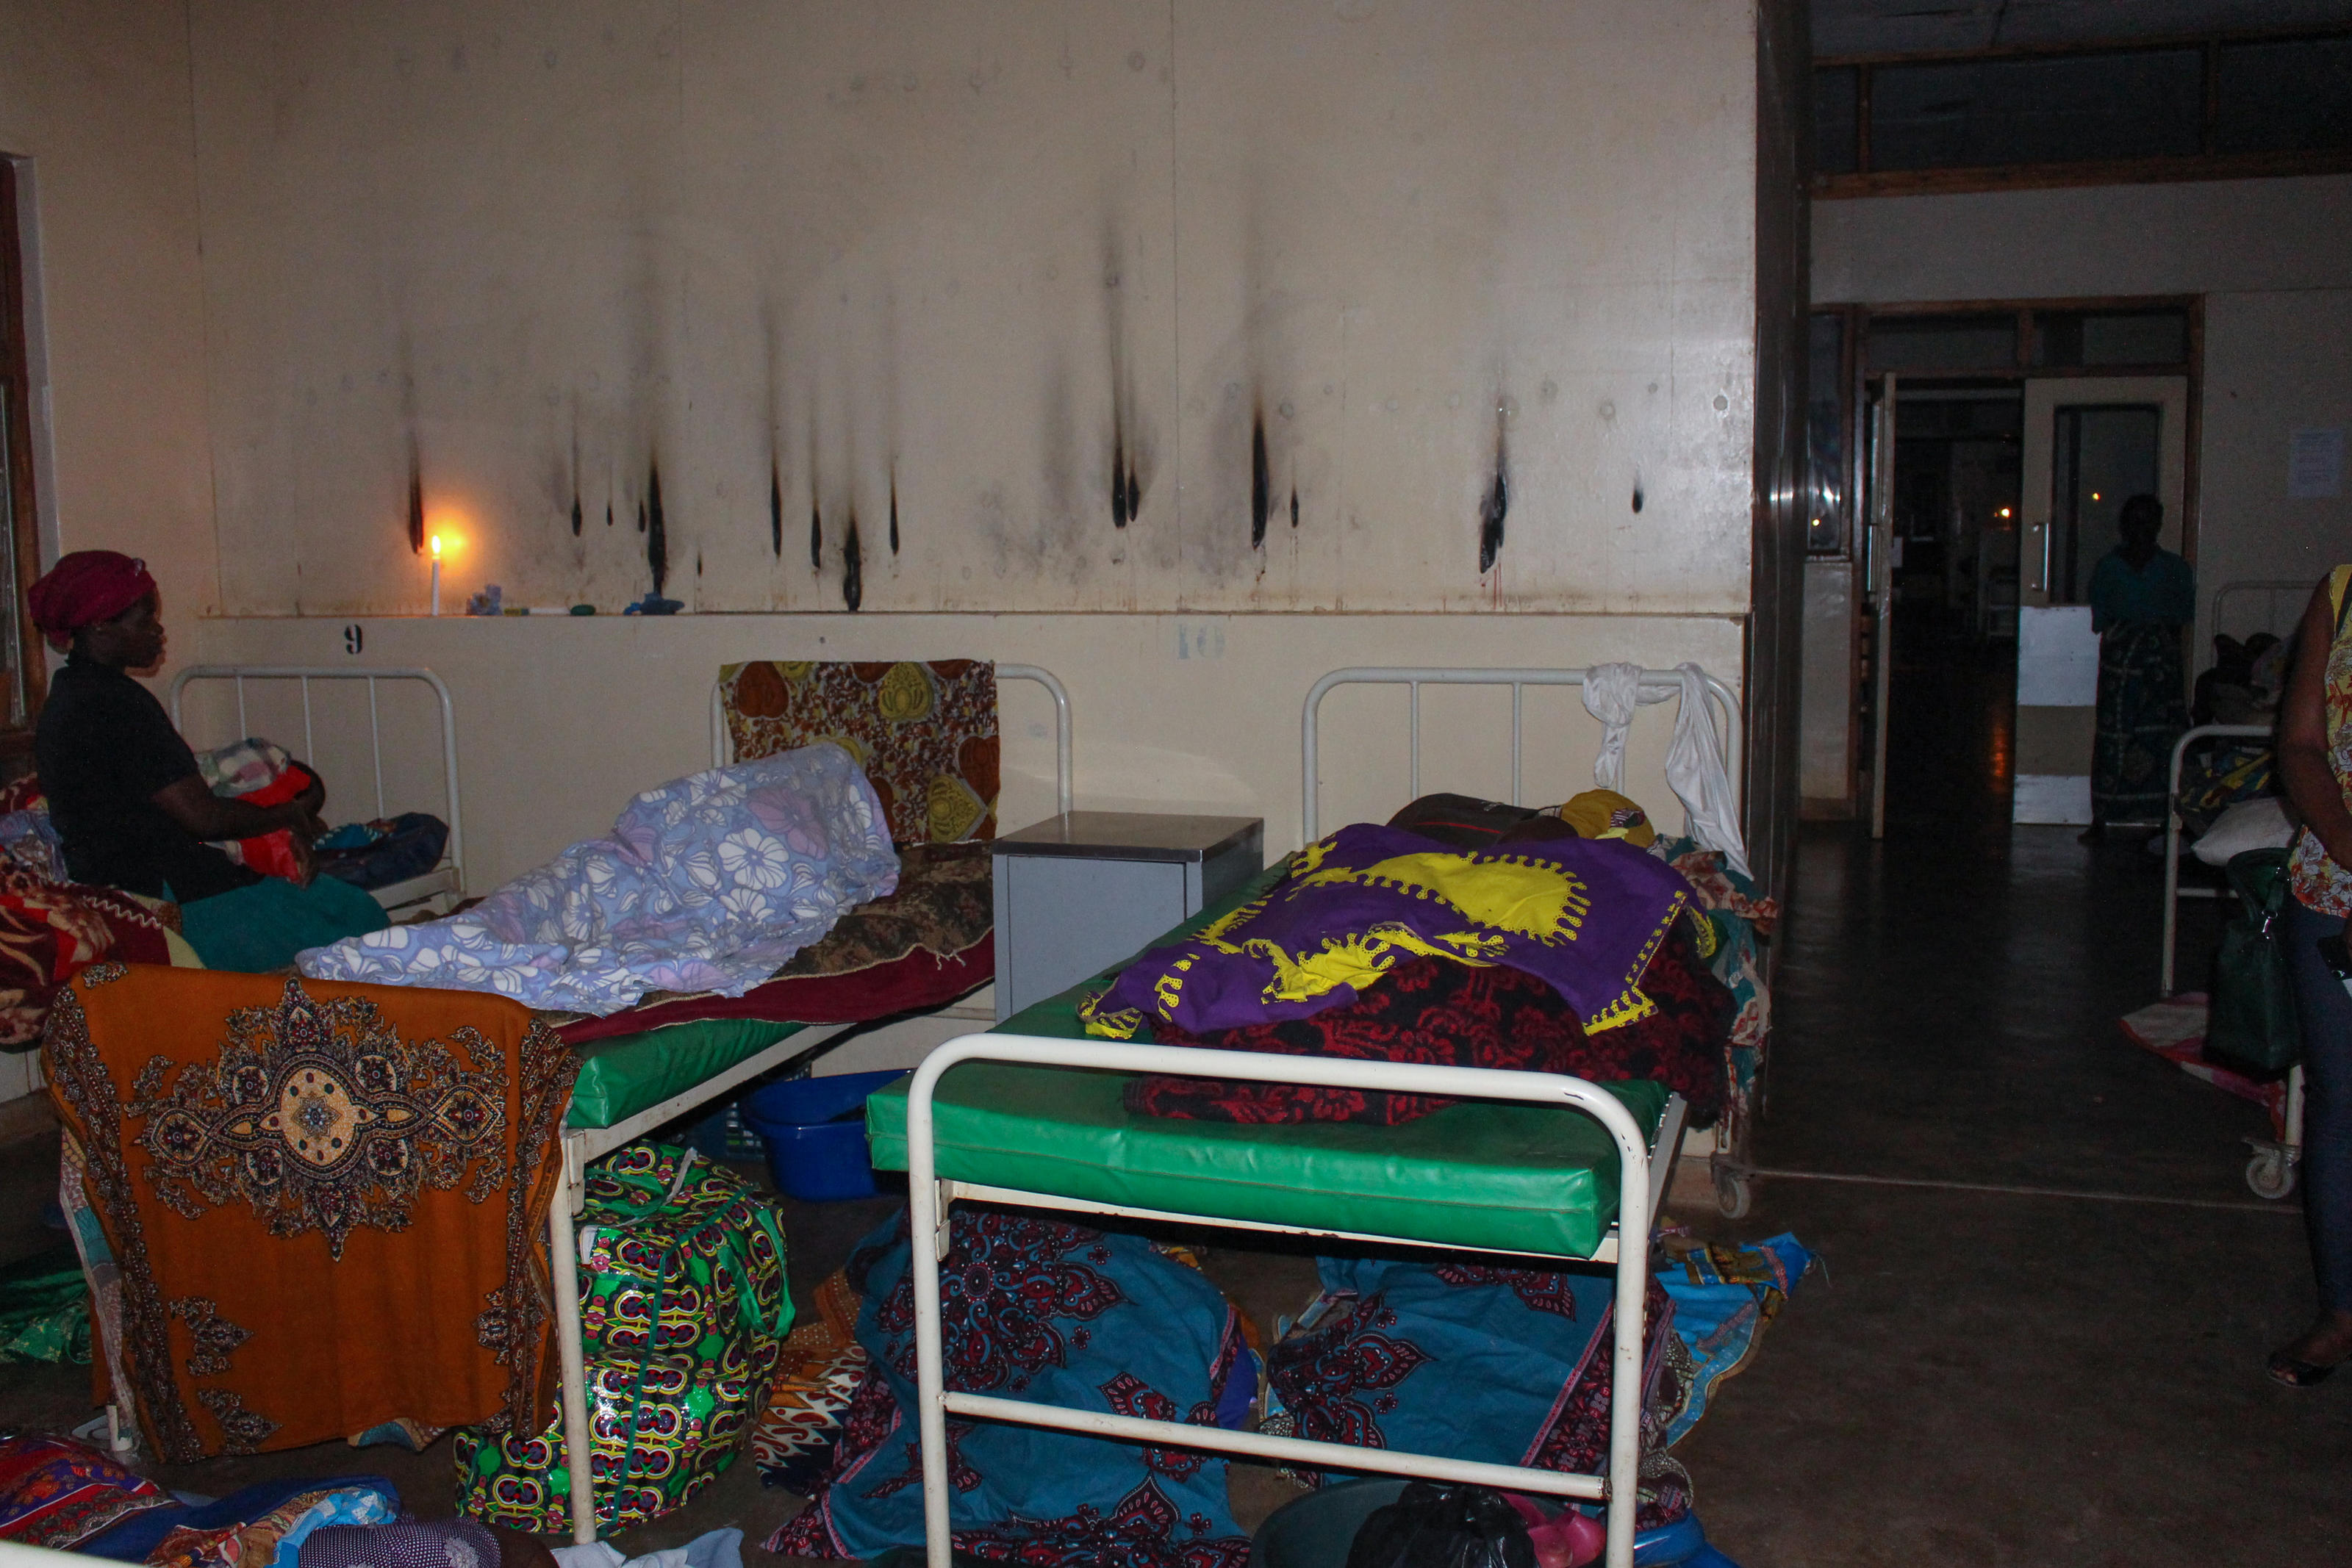 In the maternity ward, expectant women and their guardians sleep in the dark, aided by candlelight, in Ntchisi District Hospital, Malawi, October 2018.